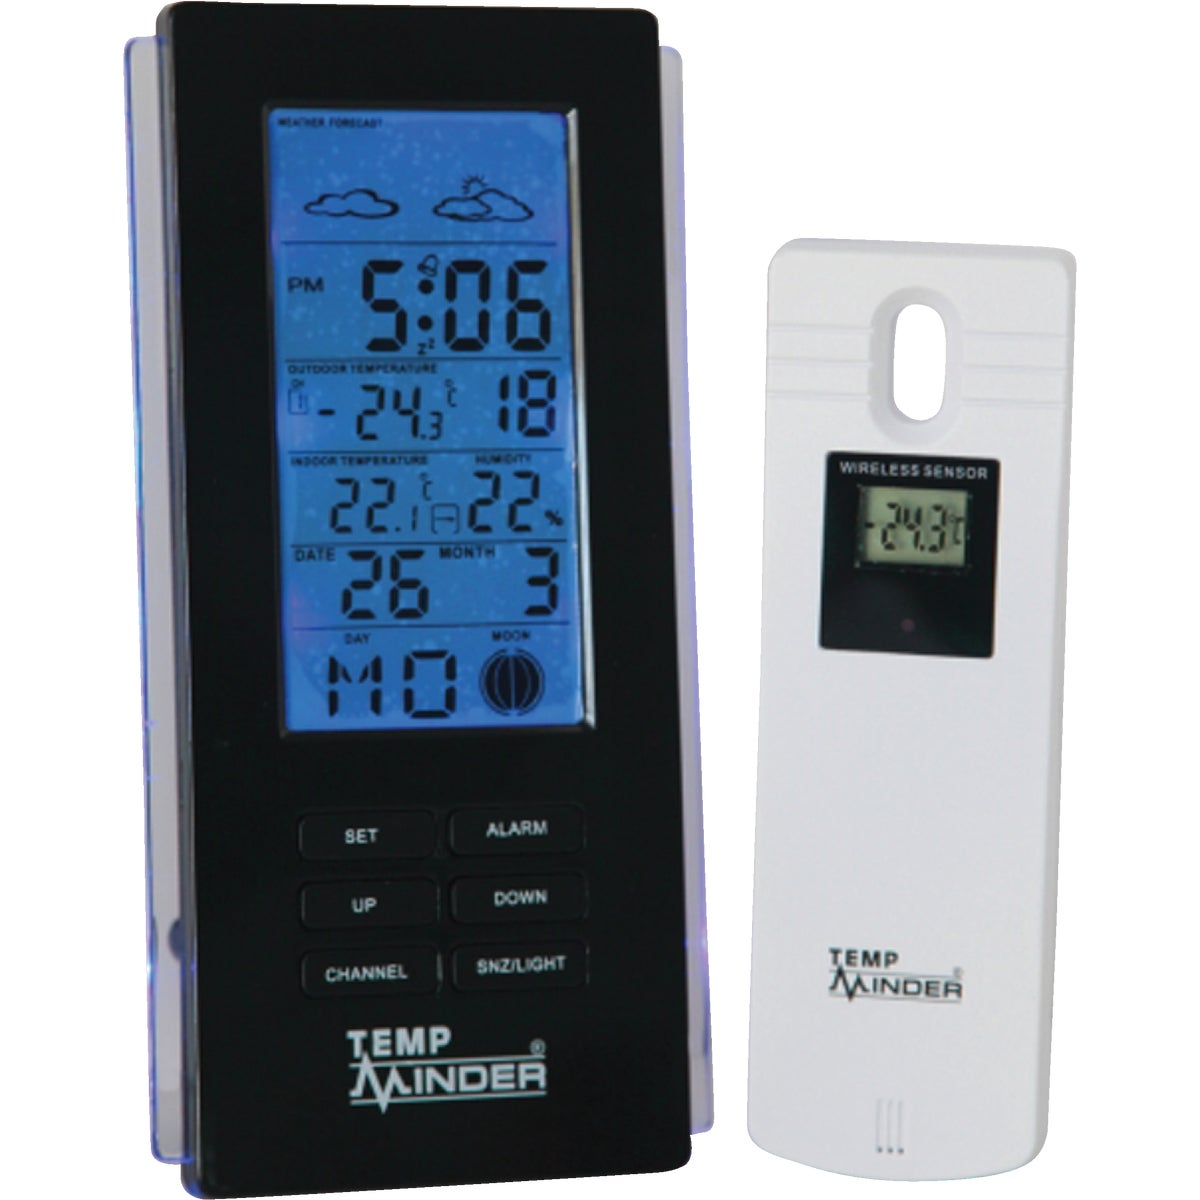 Item 650208, Easy-to-read LCD (liquid crystal display) with ultra blue LED (light emitting diode) back-light. Indoor thermometer and hygrometer Fahrenheit or Celsius selectable.